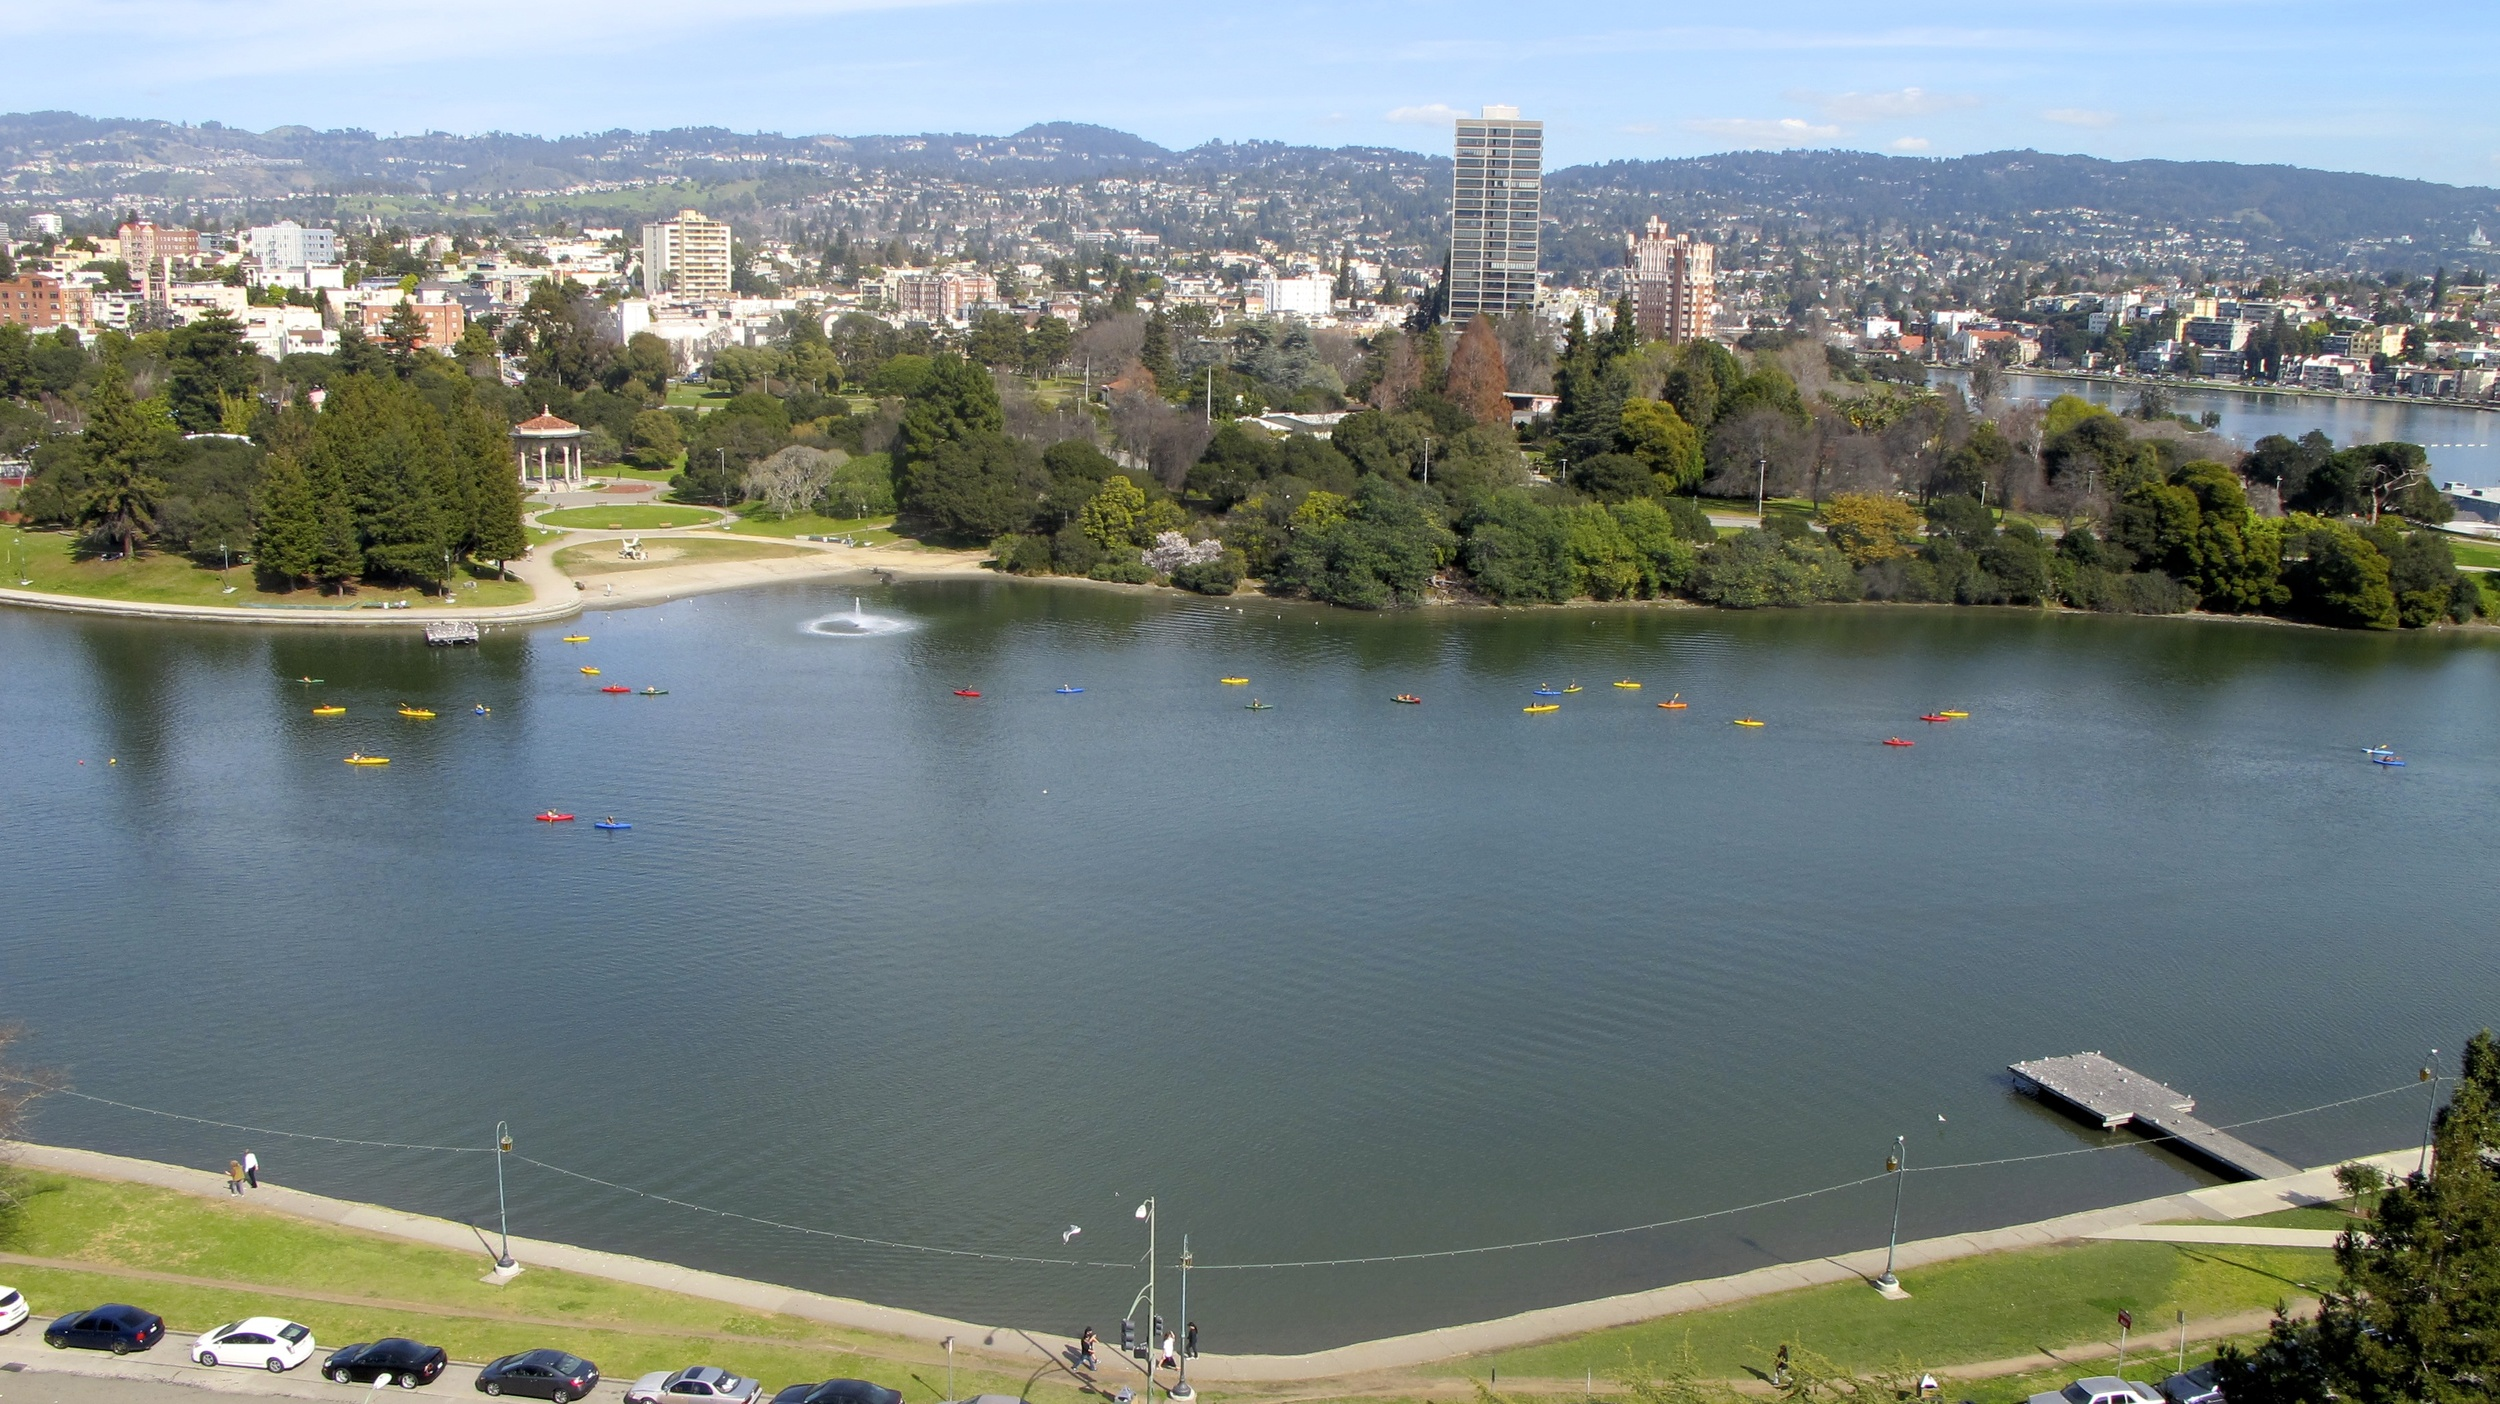 a snapshot I took while showing a Lake Merritt front co-op apartment